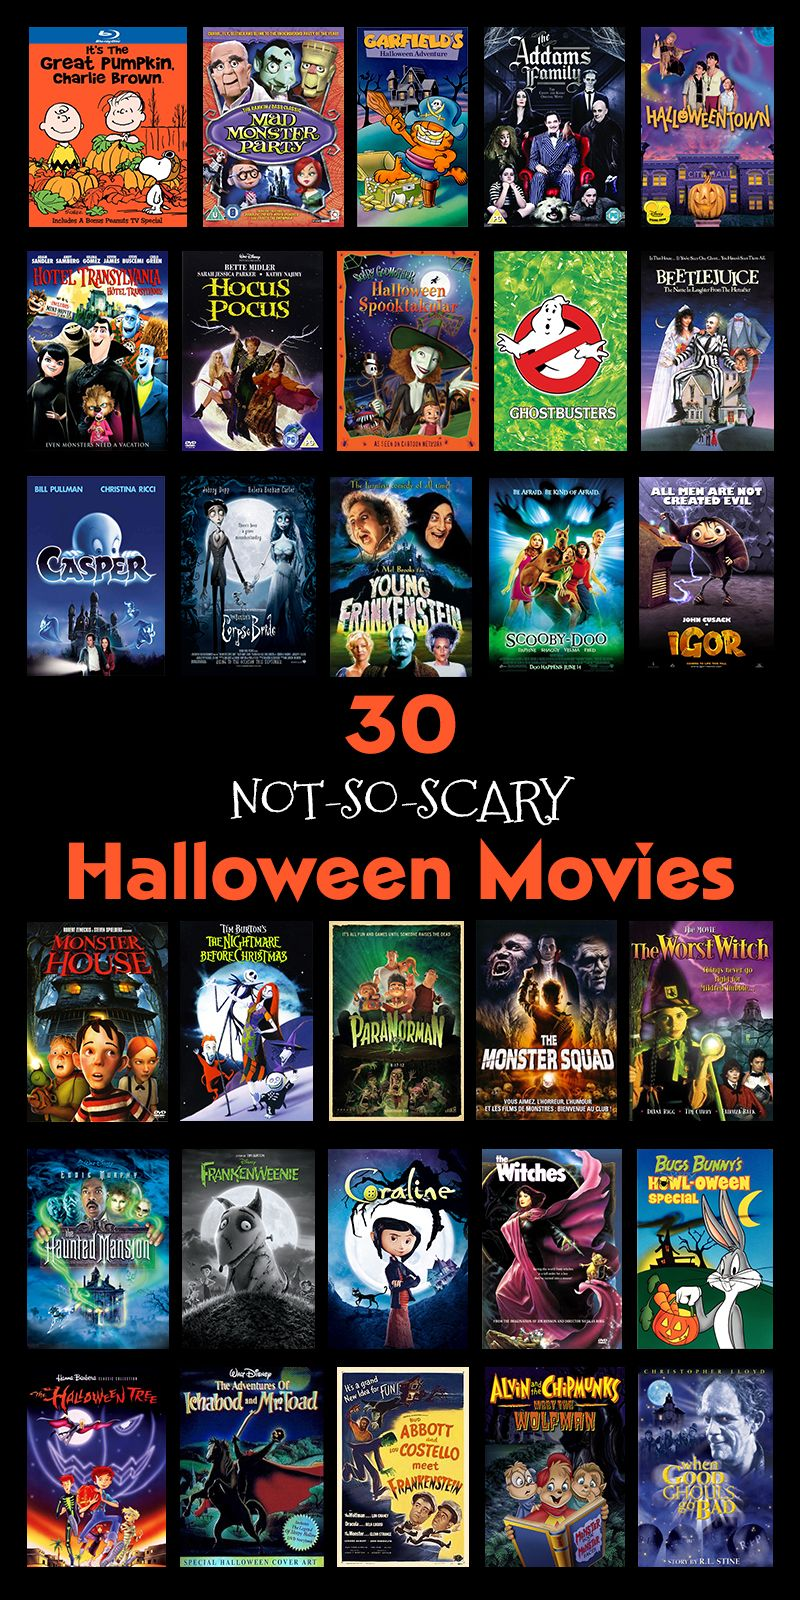 30 NotSoScary Halloween Movies 'Tis The Season